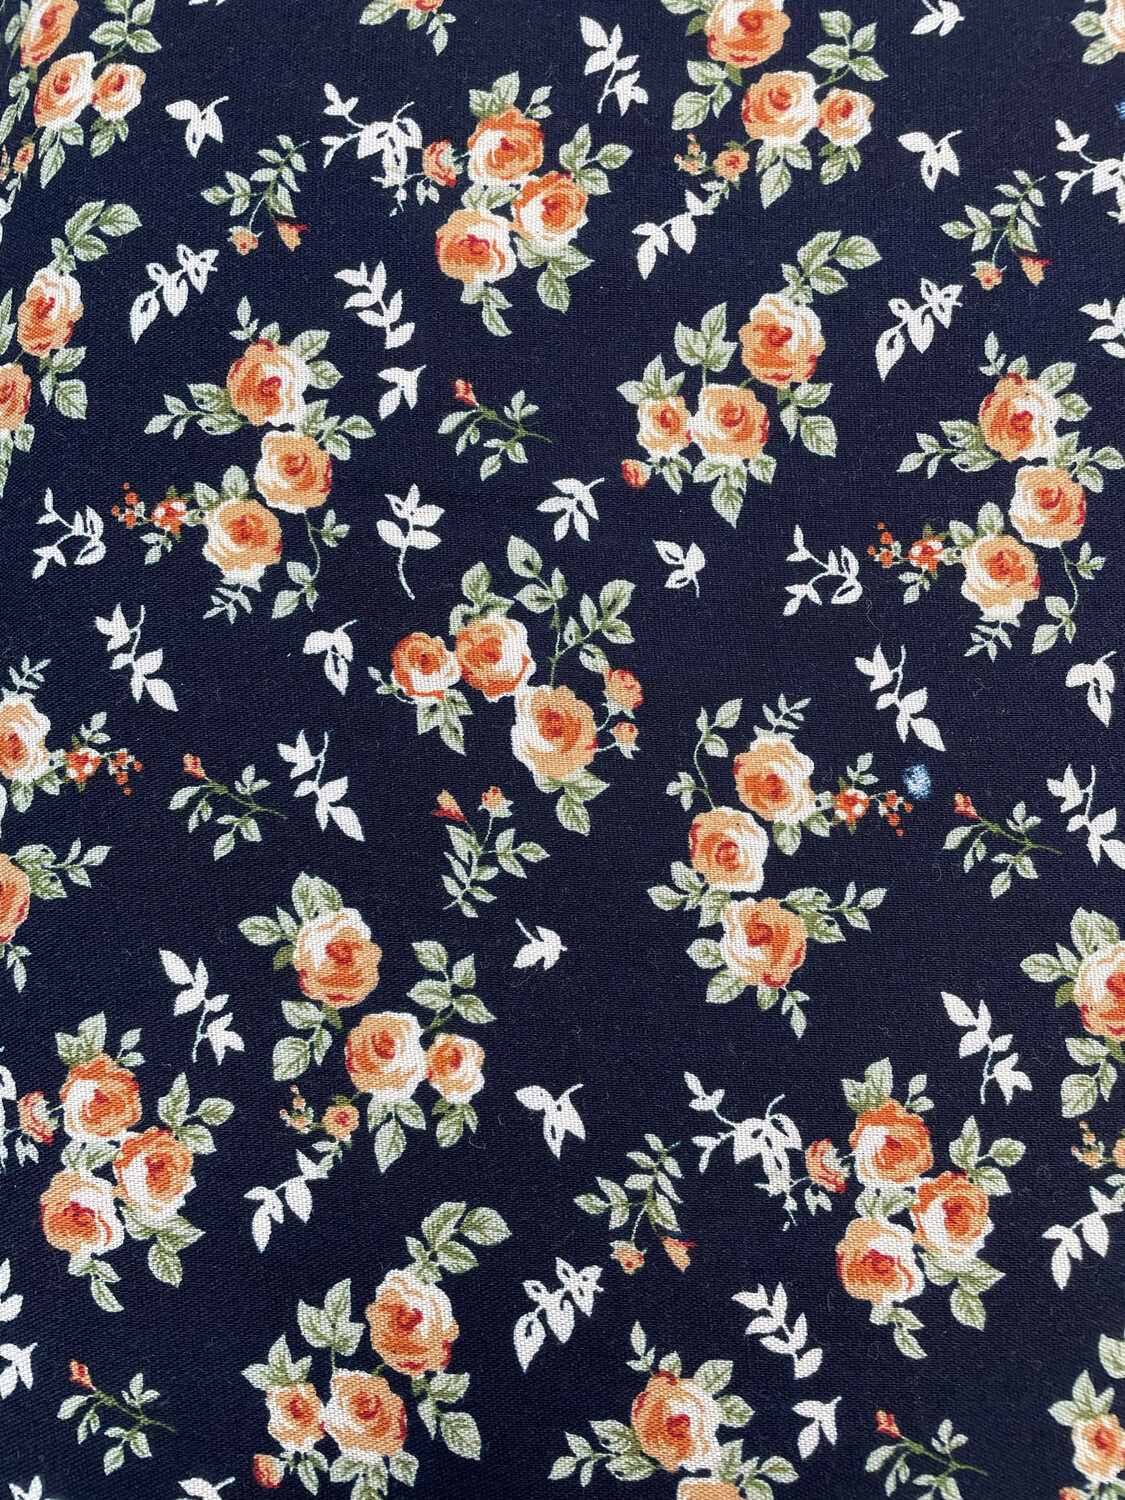 Navy Floral Viscose 145cm Wide Fabric - SECONDS